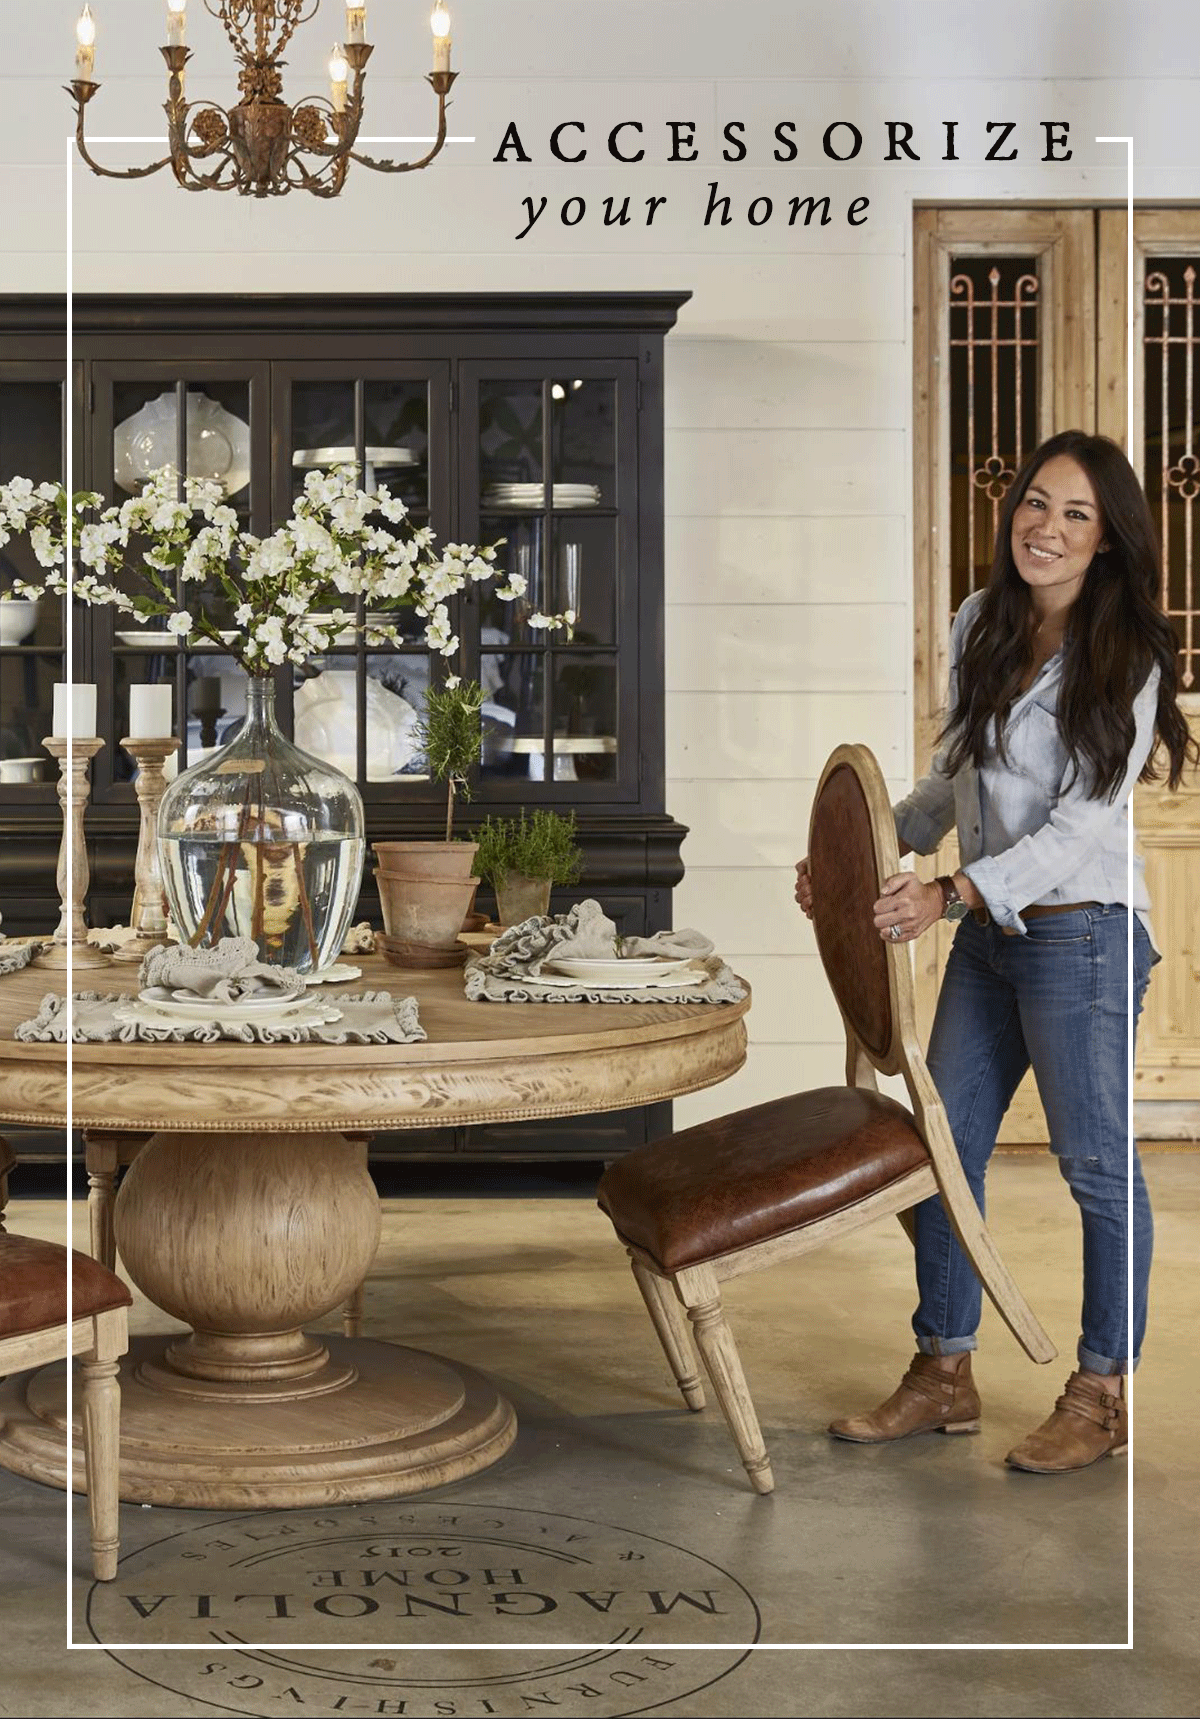 Accessorize Your Home With Joanna S Line Of Accessories Round Dining Table Decor Dining Room Table Centerpieces Dining Room Centerpiece